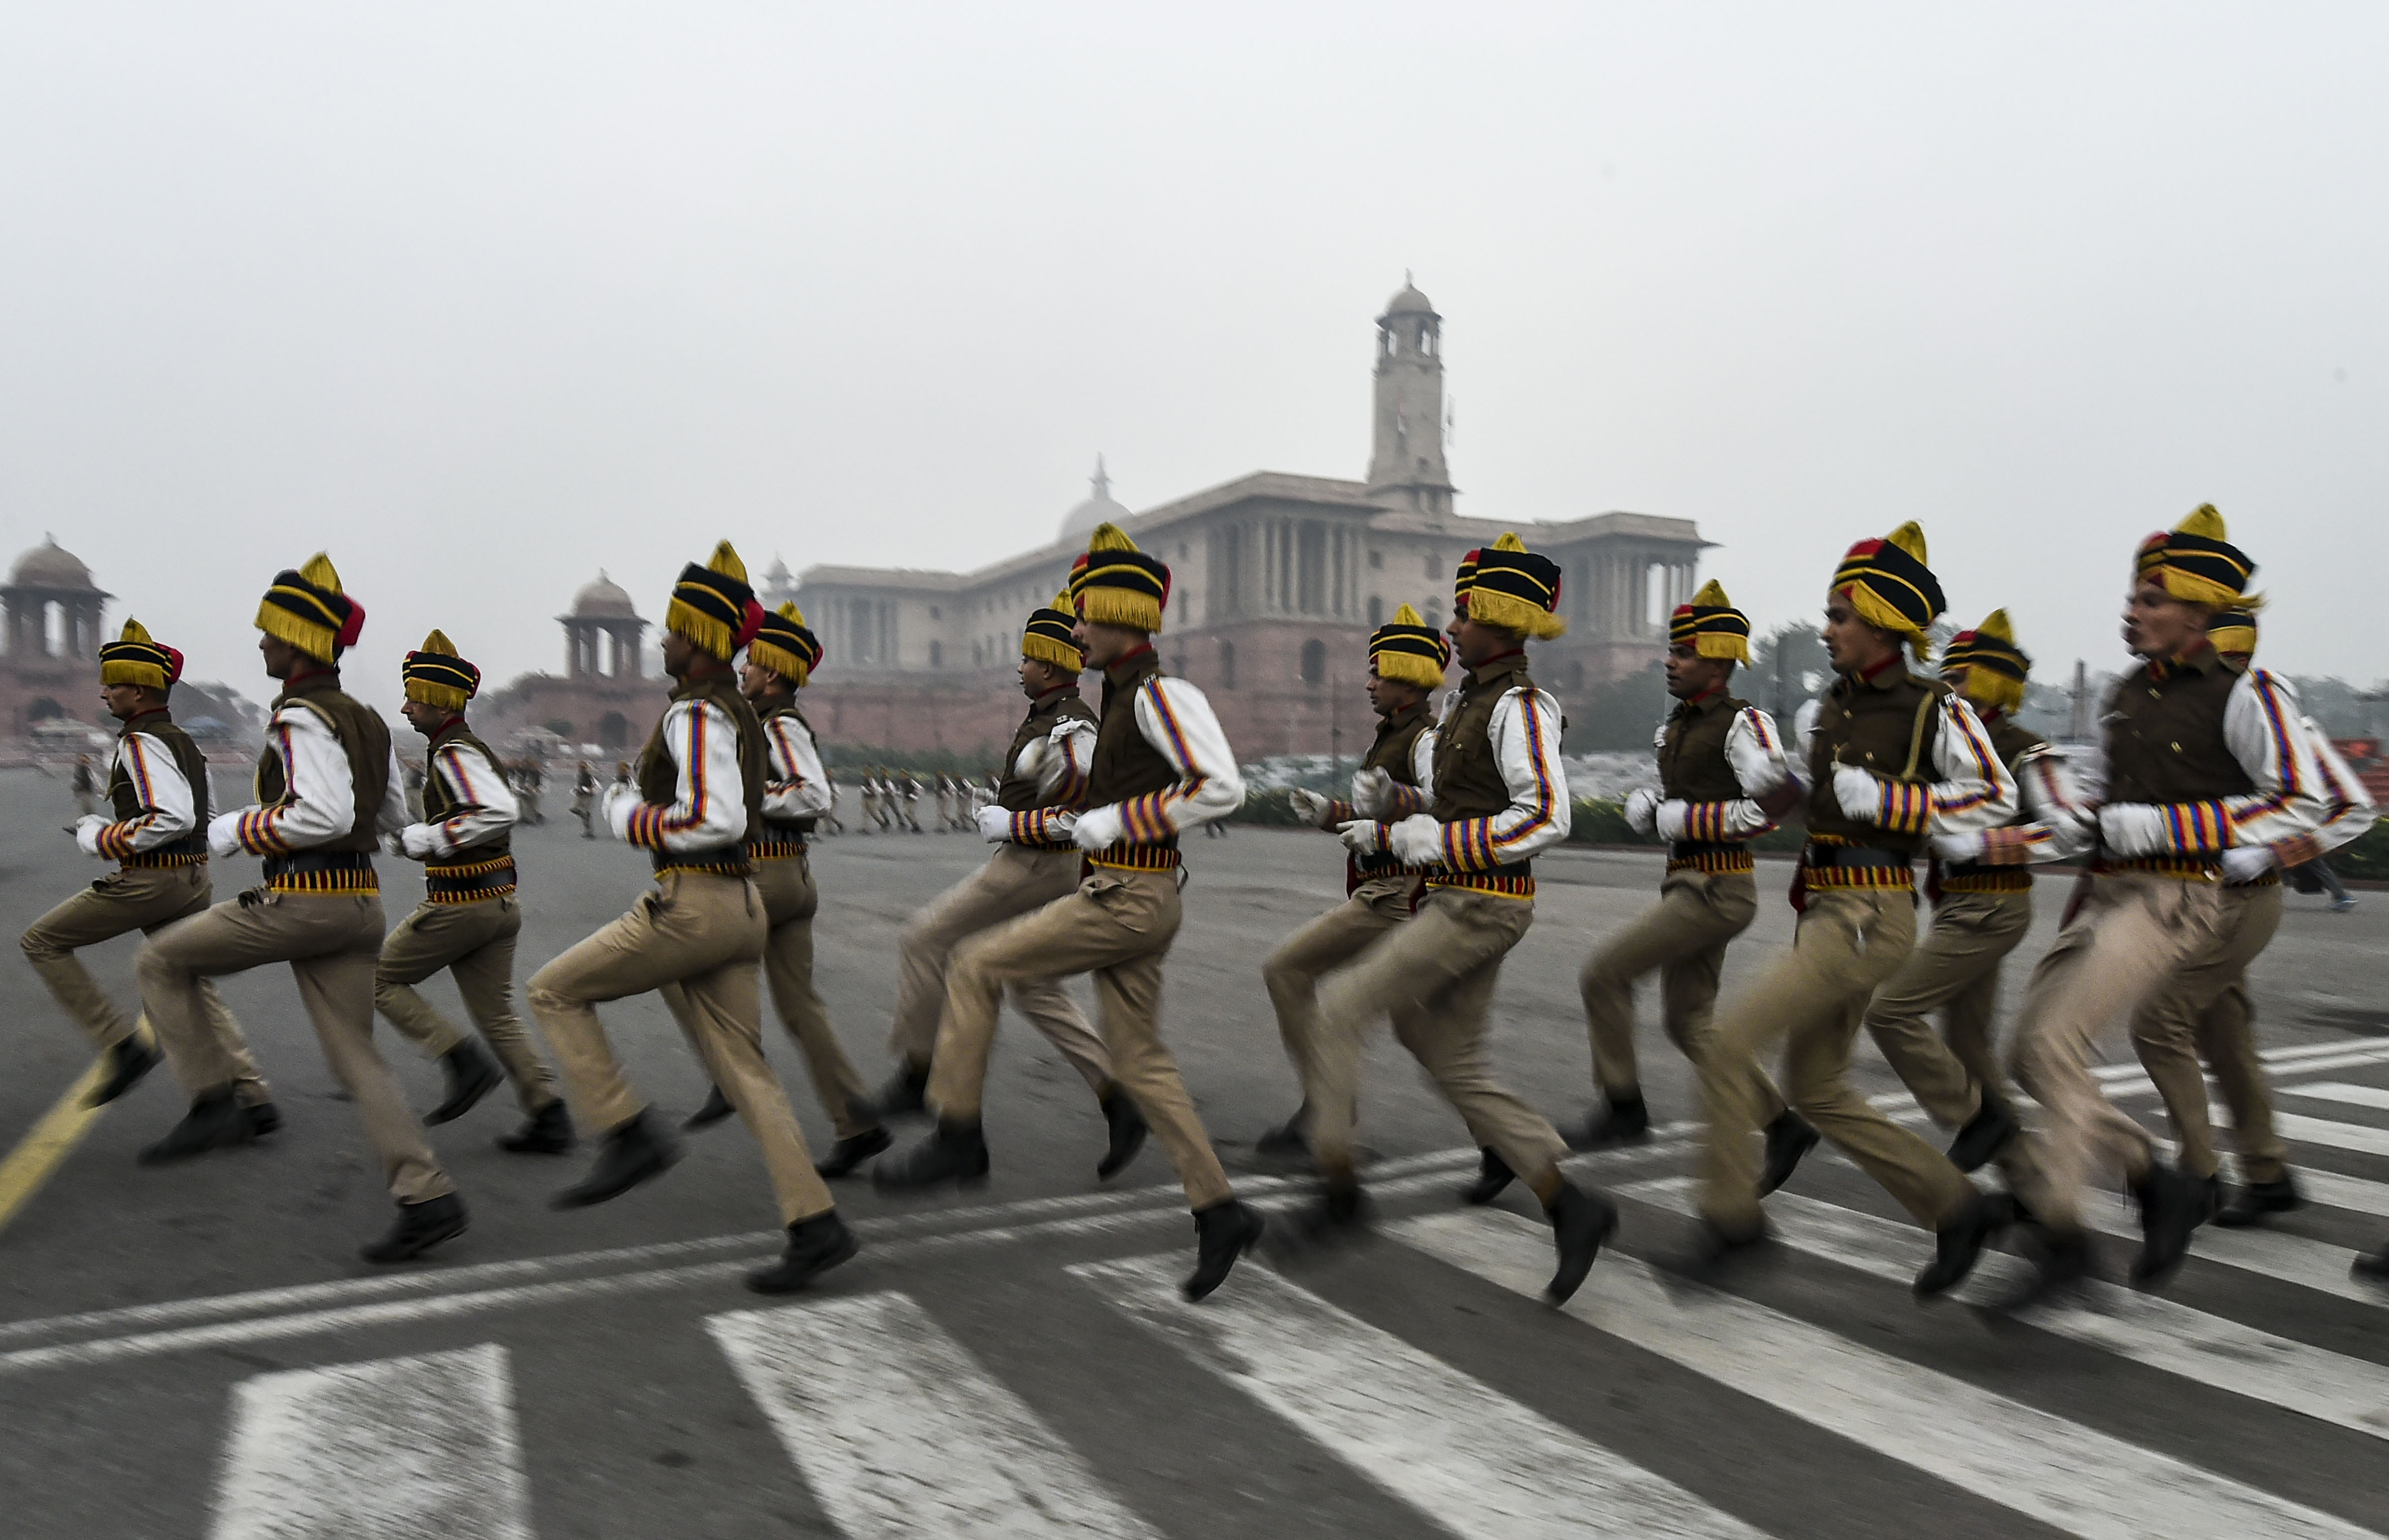 Delhi Police personnel during the rehearsal for the upcoming Republic Day parade, on a cold, winter morning at Rajpath in New Delhi - PTI